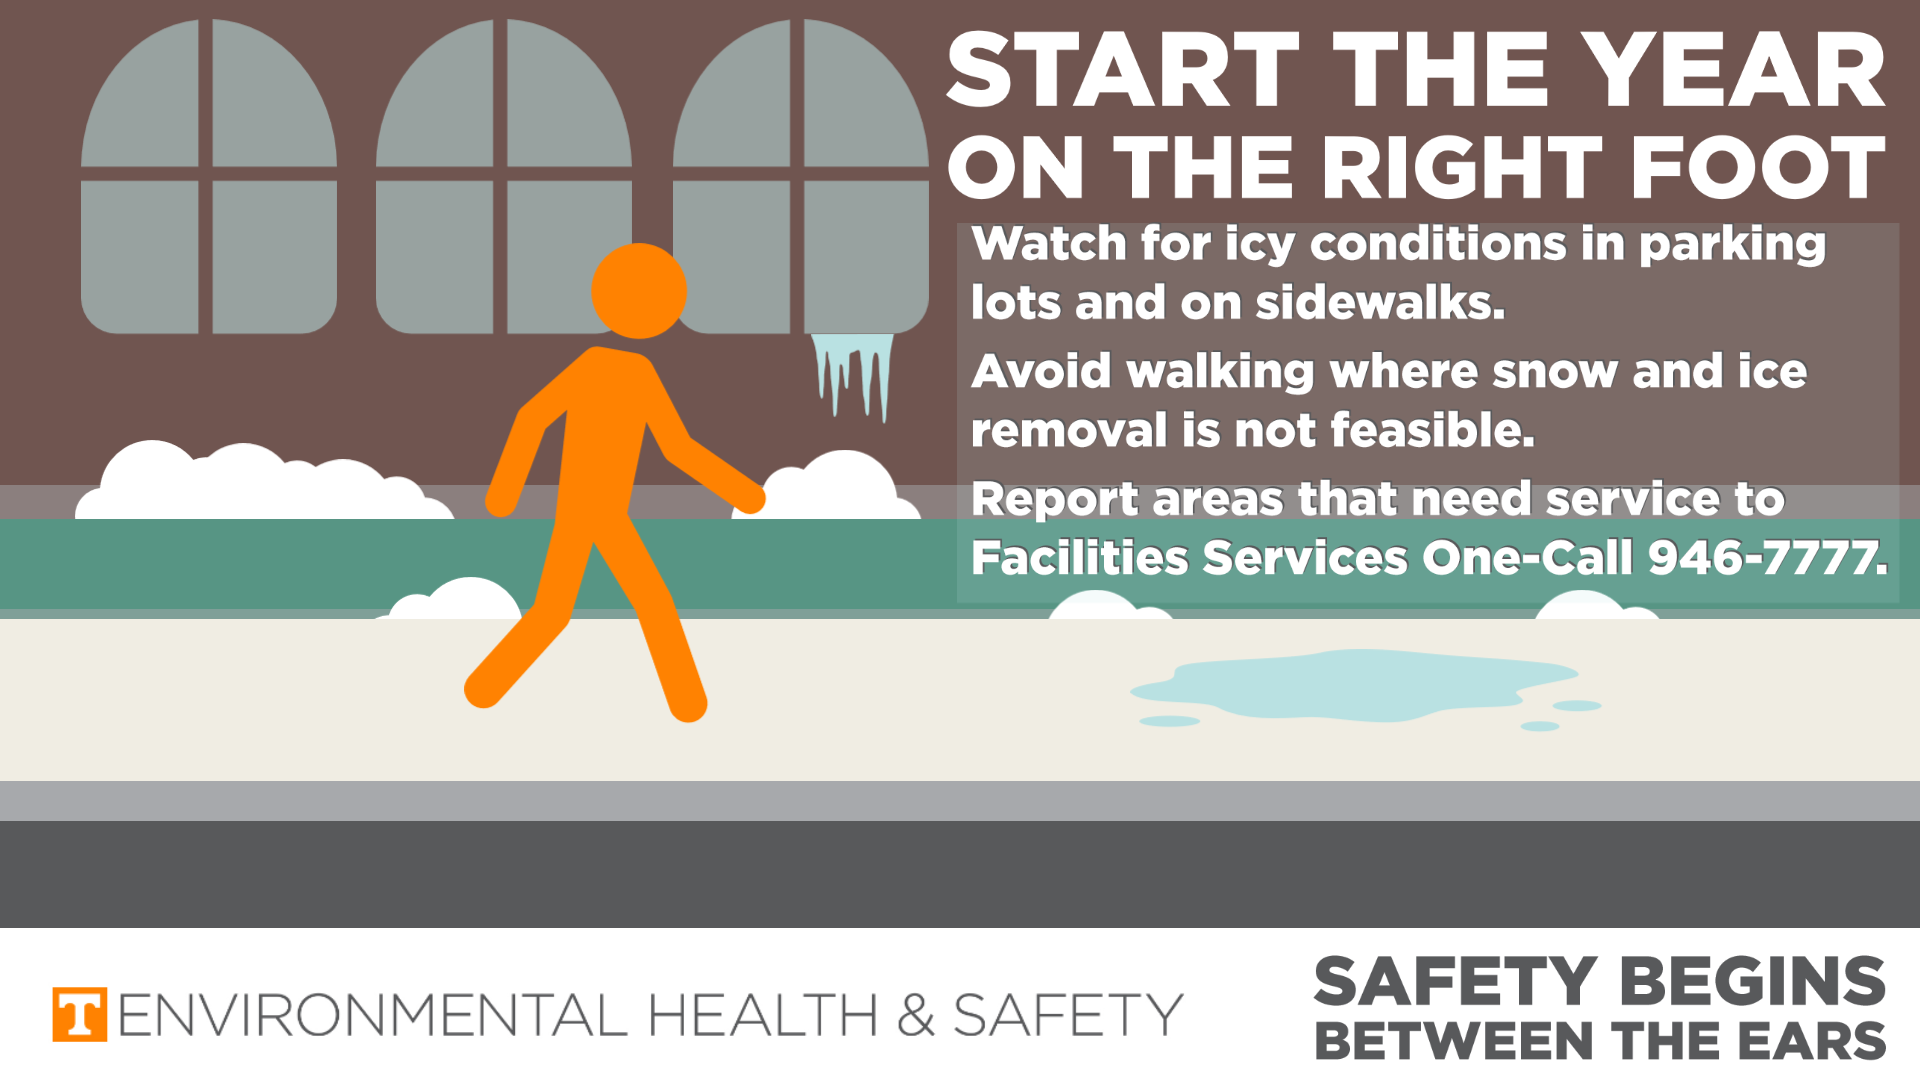 Graphic of person walking on sidewalk with slippery conditions. Instructions are to contact Facilities Services at 865-946-7777